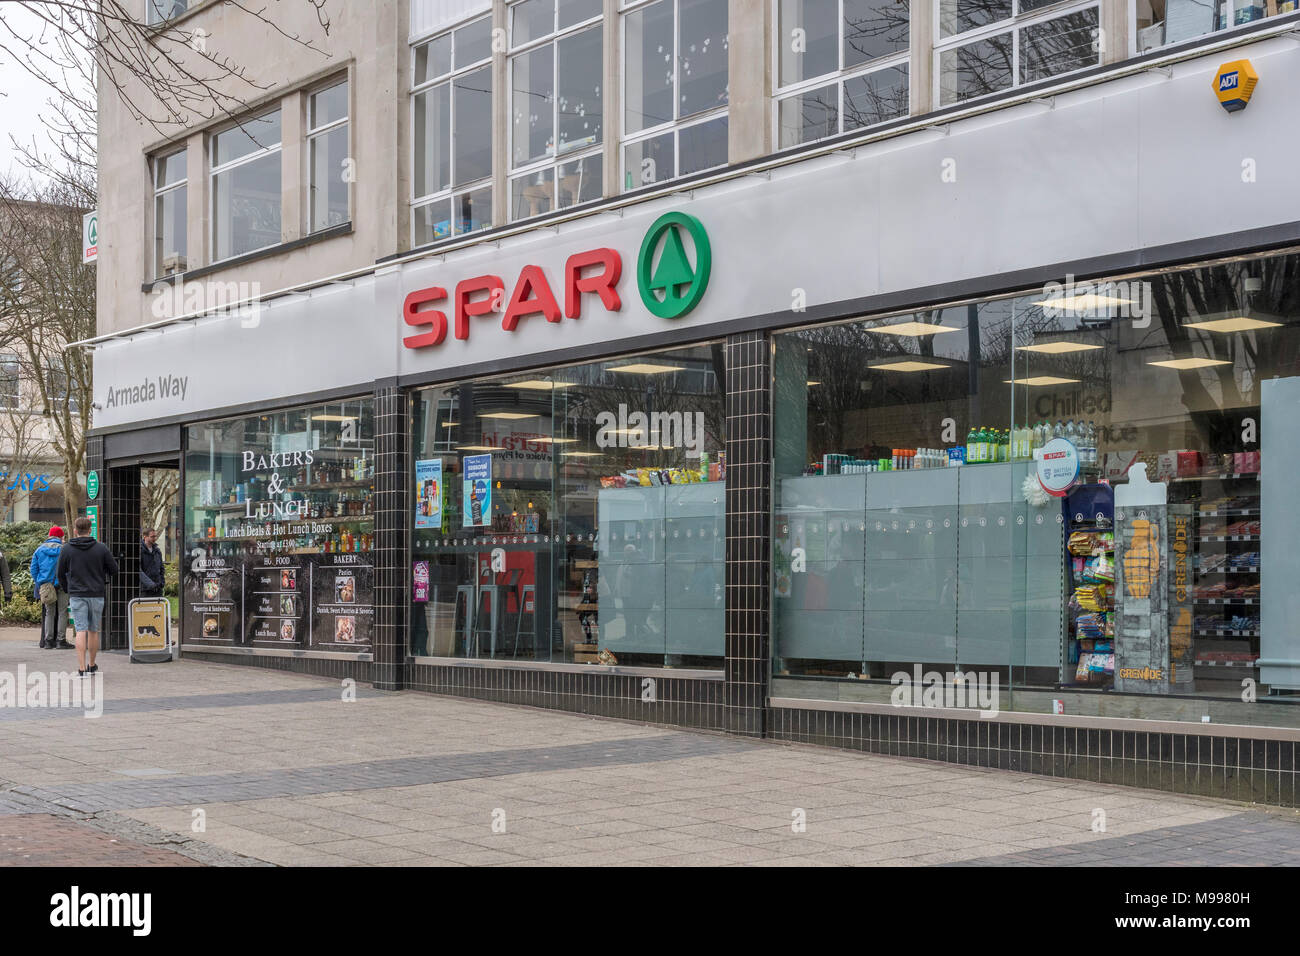 Death of the High Street metaphor / concept - Exterior of SPAR shop on Armada Way, Plymouth, Devon. Stock Photo